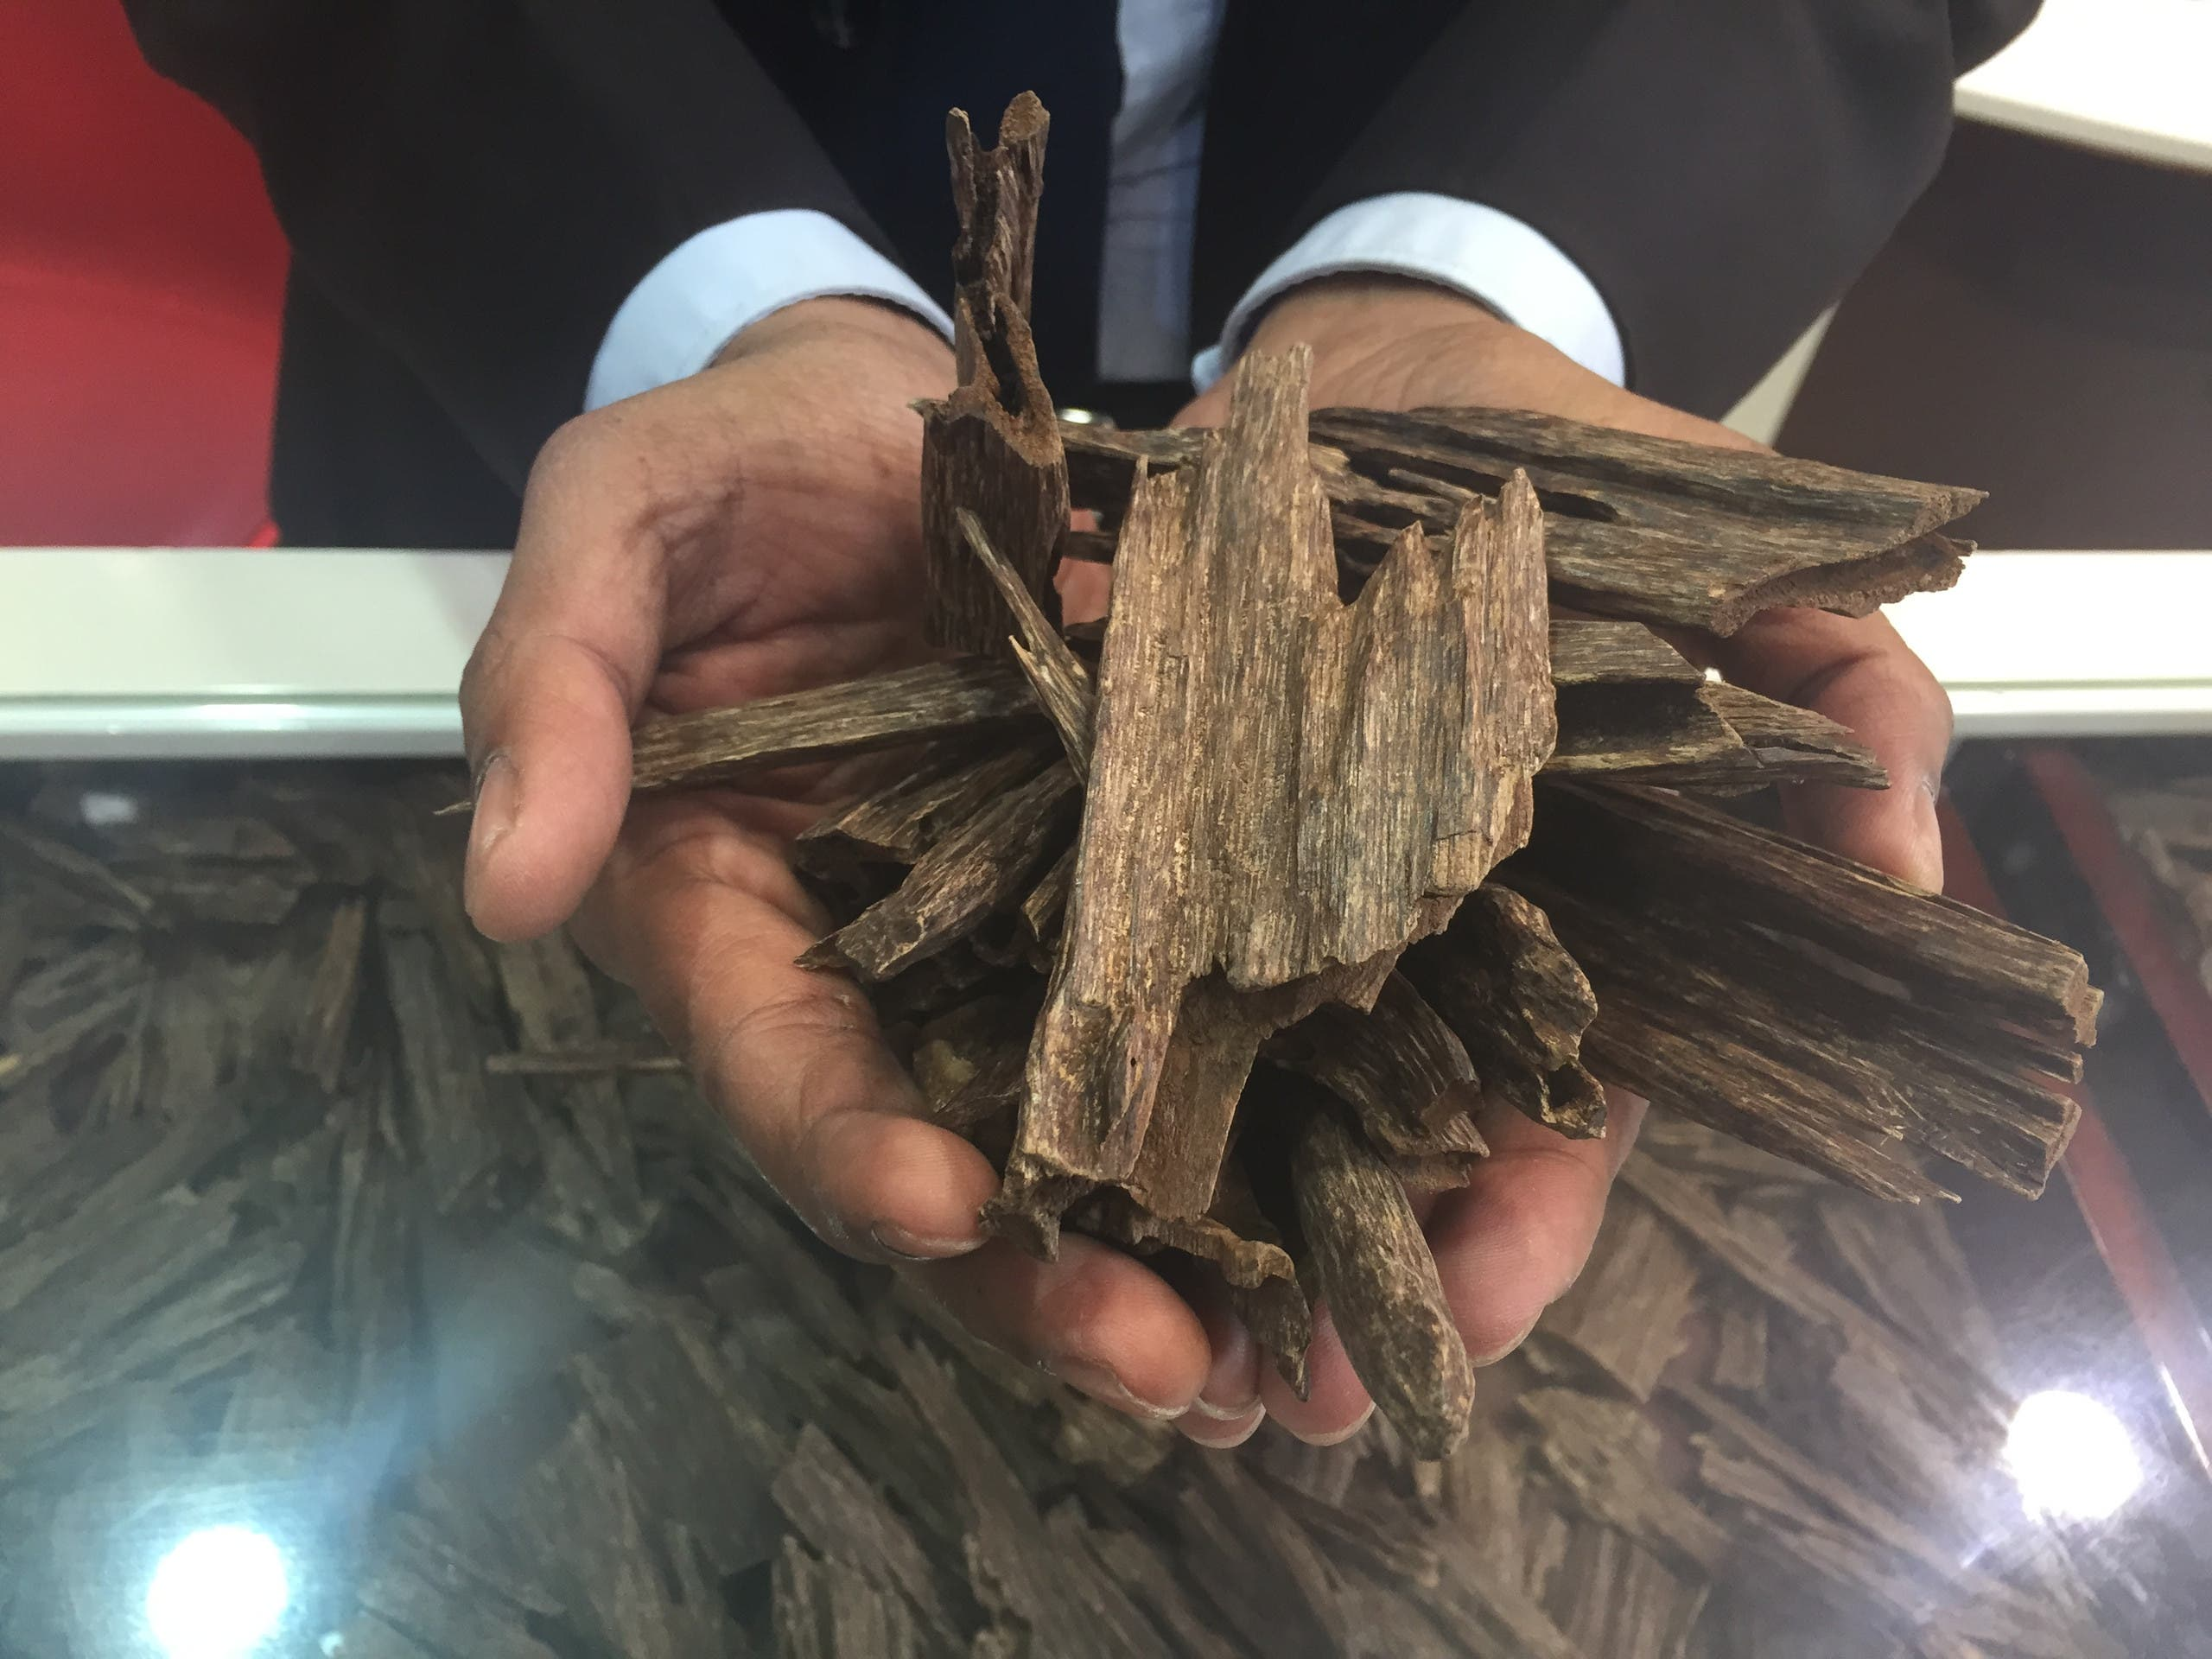 A tola, or 12 grams, of Indian oud is shown. Usually has a more spicier smell. (Ismaeel Naar/Al Arabiya English)